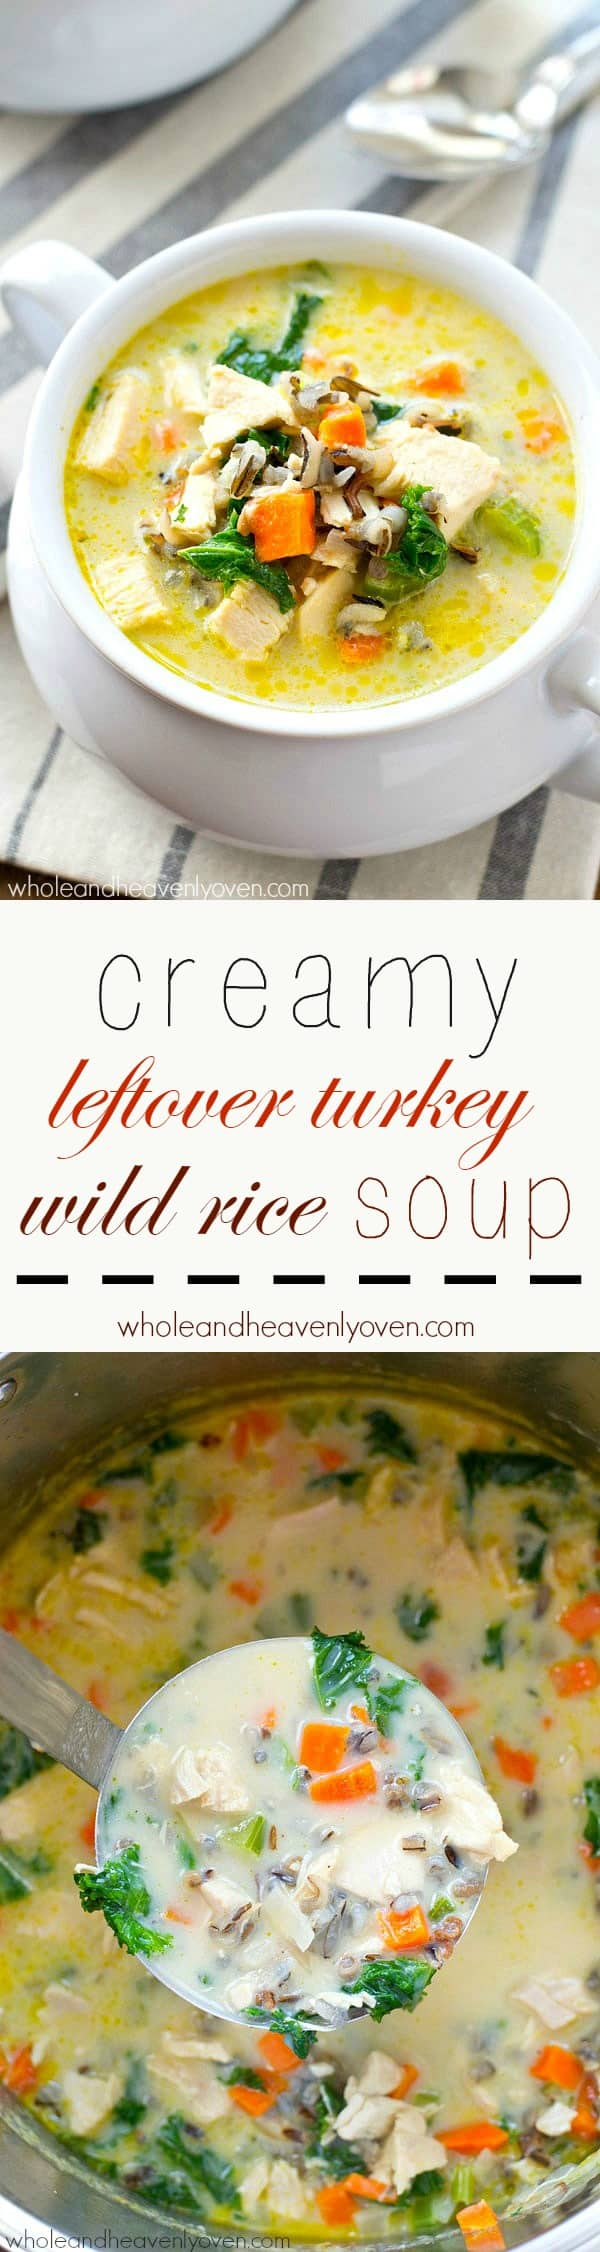 Extra-creamy and loaded with wild rice, turkey, and plenty of comfort, this turkey wild rice soup is the easiest way to use up that leftover Thanksgiving turkey! @WholeHeavenly